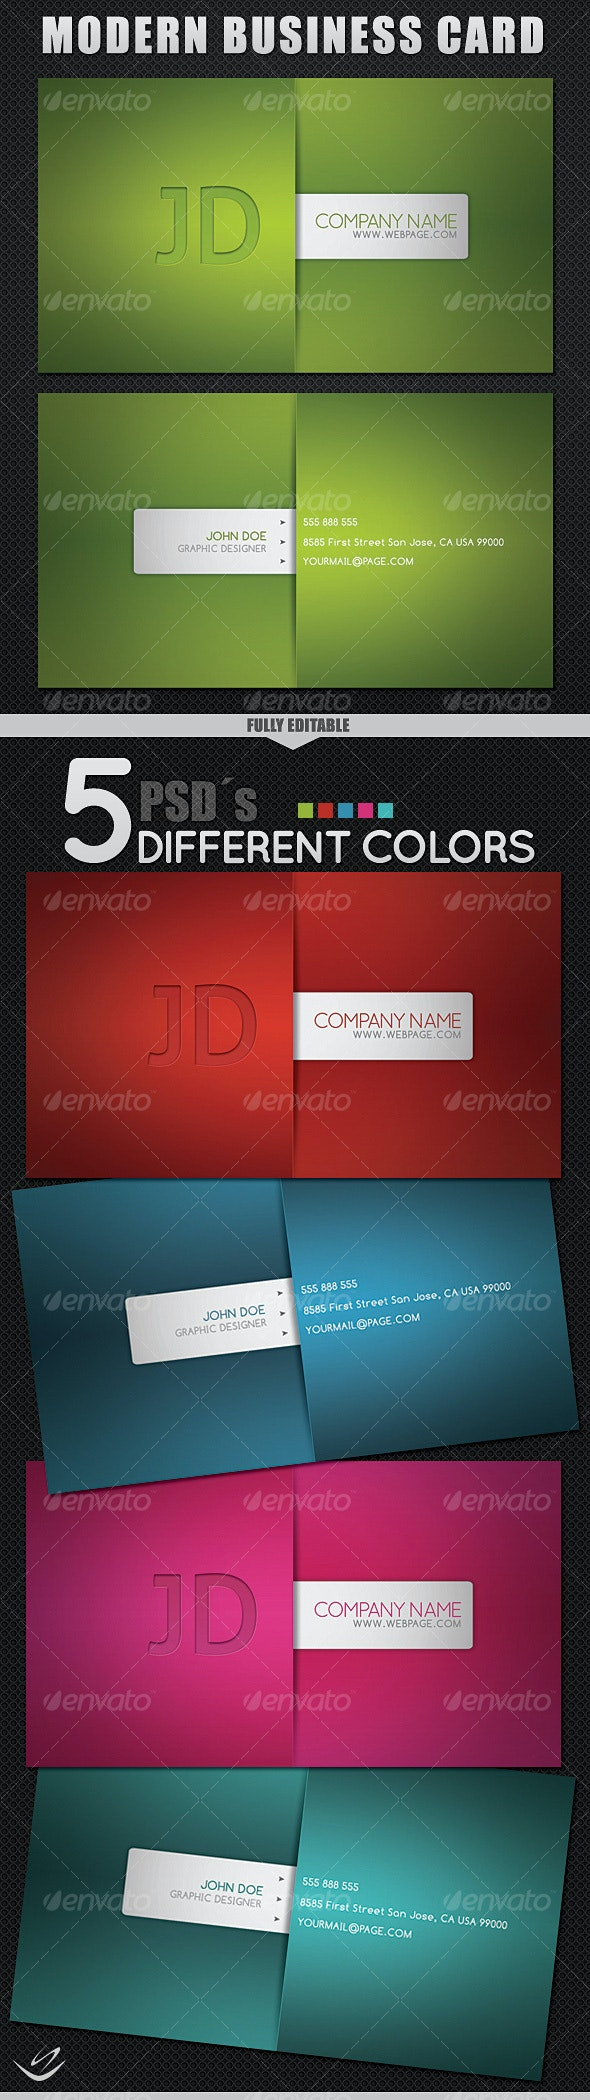 Modern Style Business Card - 5 Different Colors - Corporate Business Cards